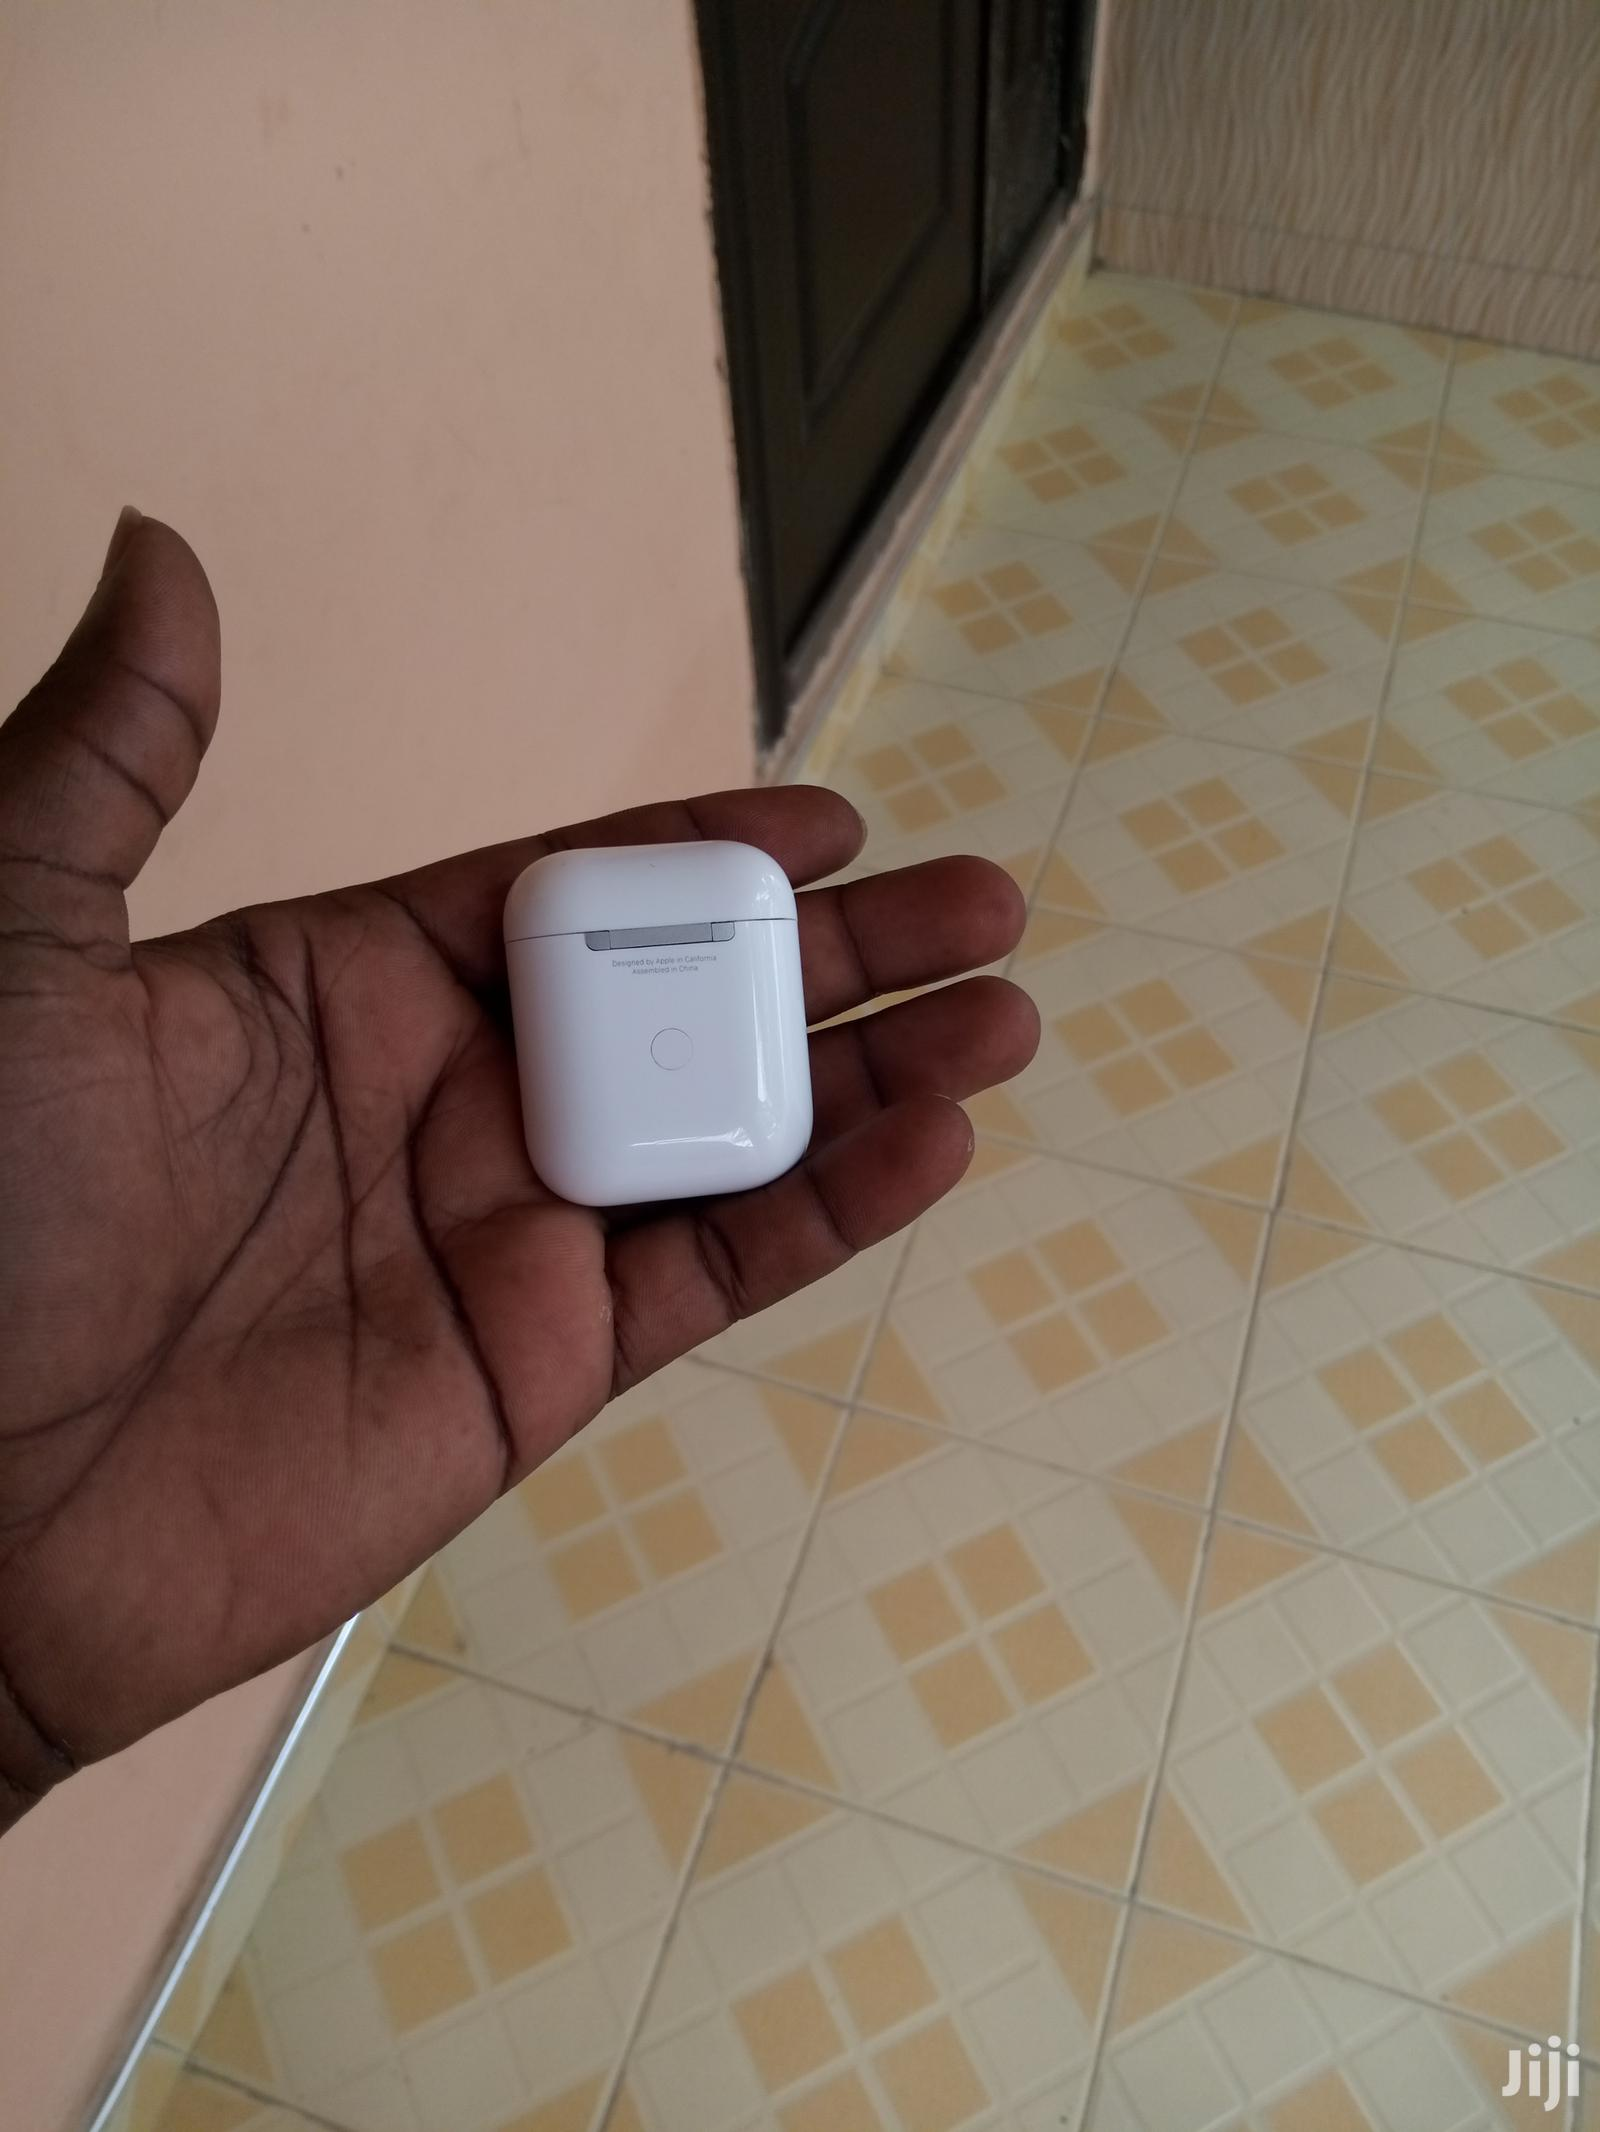 Apple Airpod 2 2nd Generation (Brand New & Sealed In Box) | Headphones for sale in Accra Metropolitan, Greater Accra, Ghana